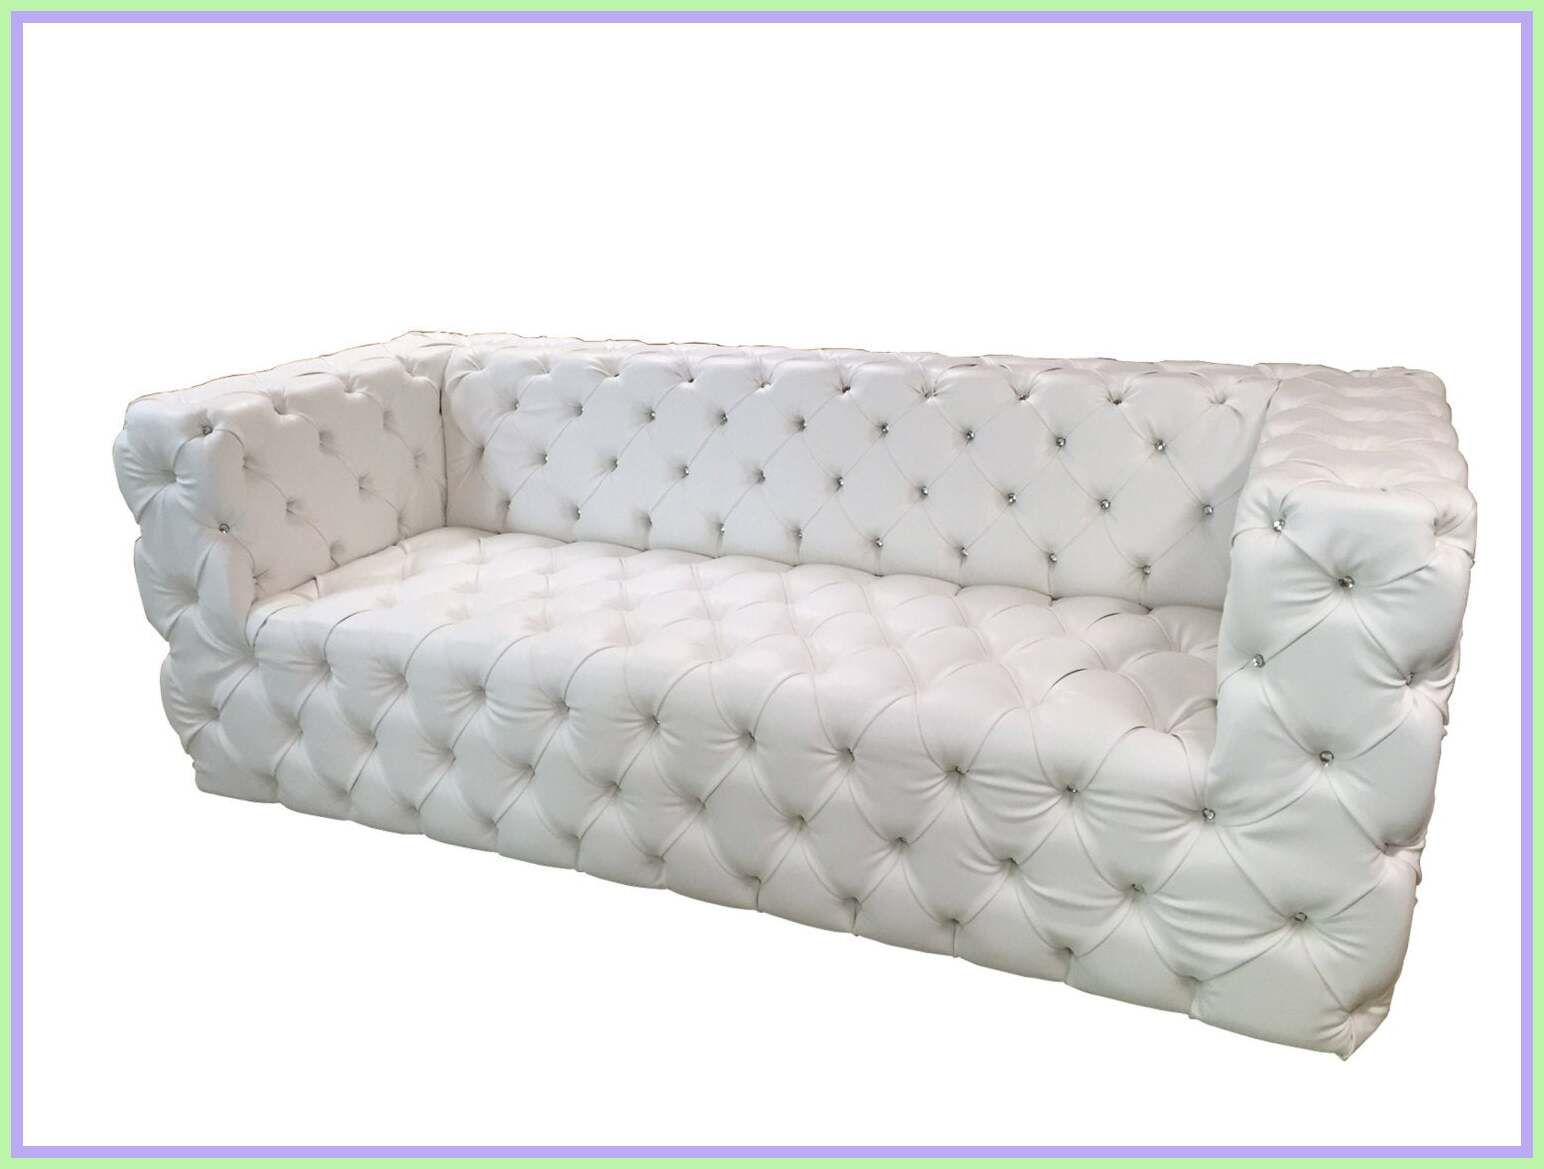 90 Reference Of White Tufted Couch In 2020 Tufted Couch Tufted Sofa White Leather Sofas